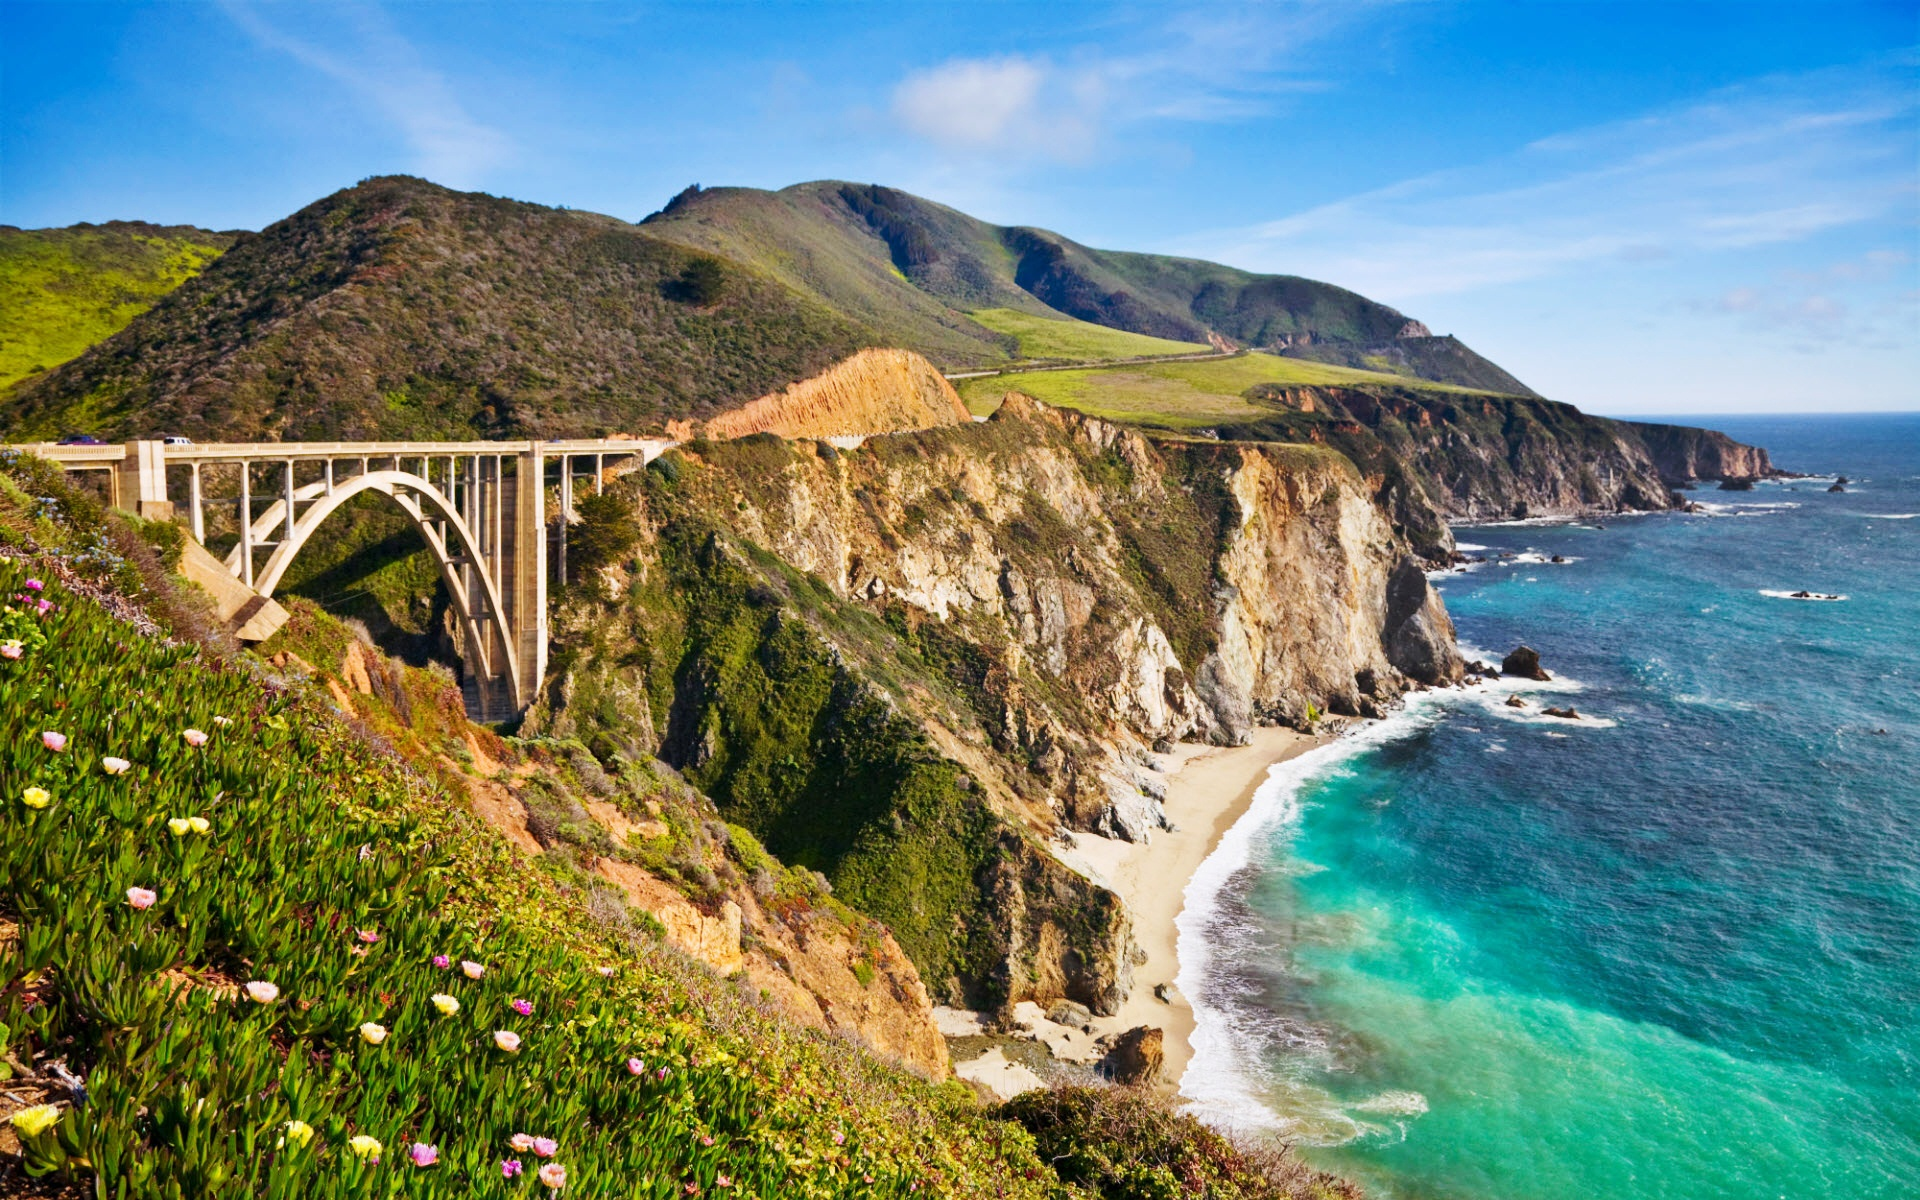 Bixby Bridge in Big Sur California 402.57 Kb